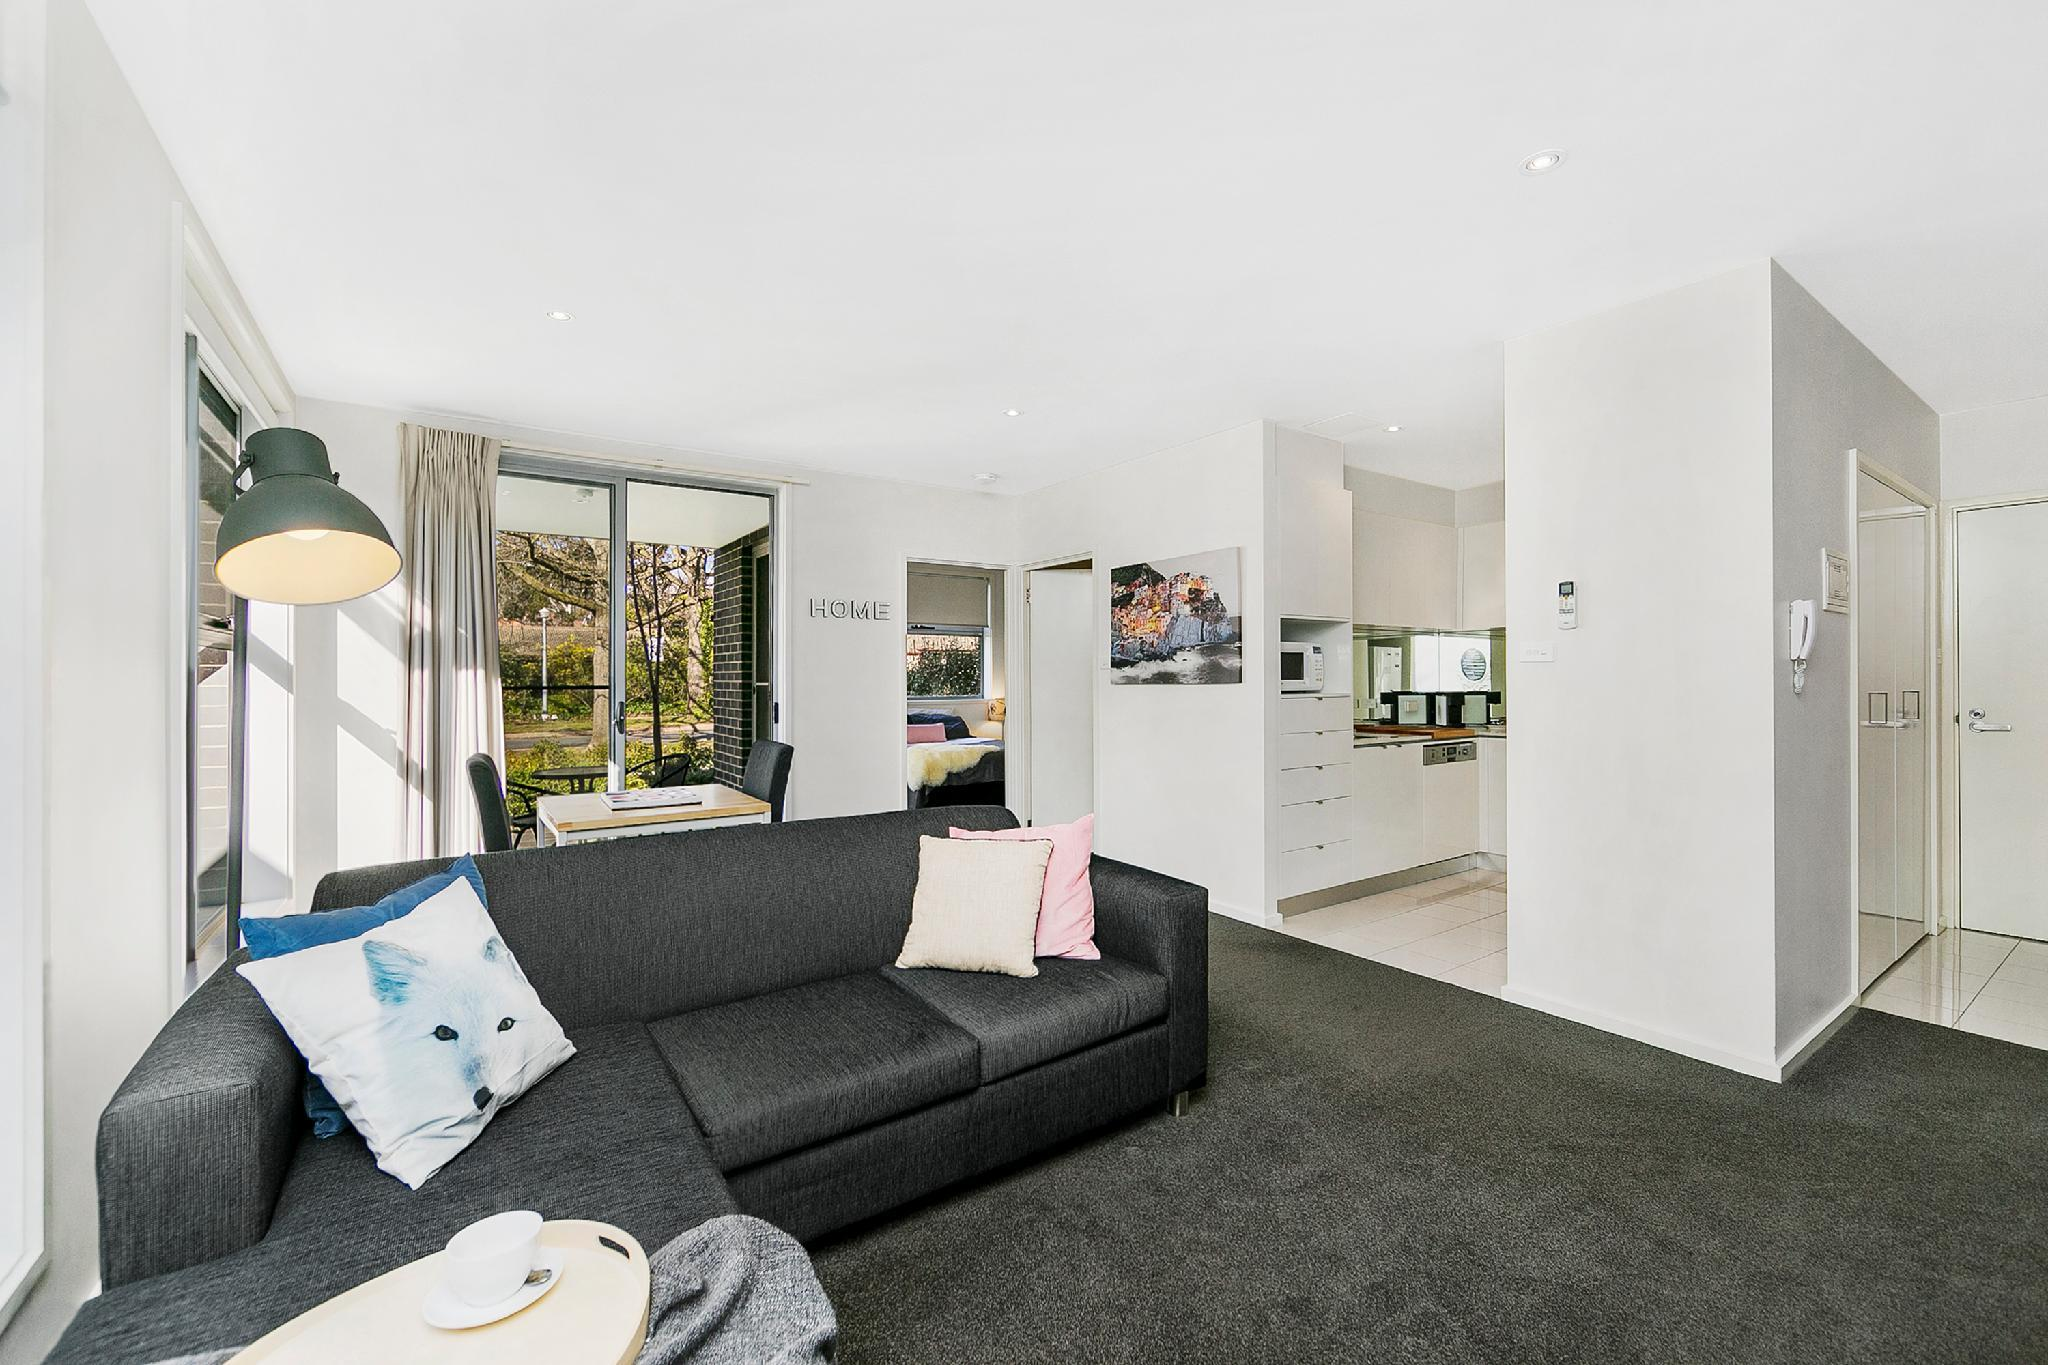 10 best canberra hotels hd photos reviews of hotels in canberra rh agoda com